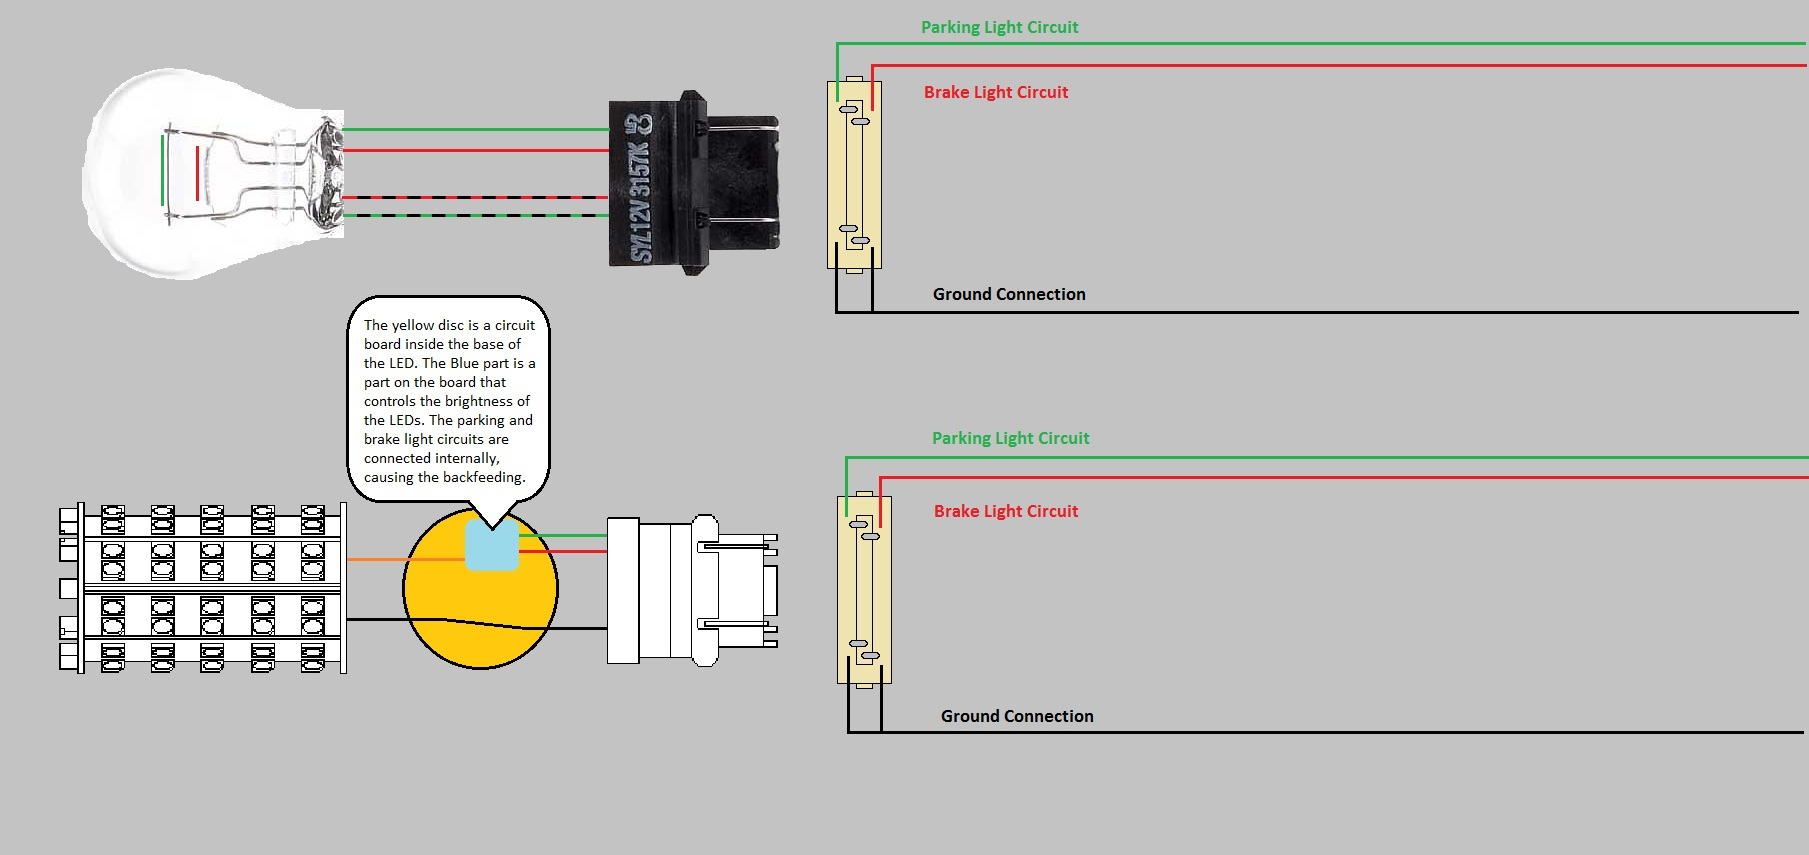 Stop Light Wiring Diagram Test | Wiring Library - Trailer Light Tester Wiring Diagram